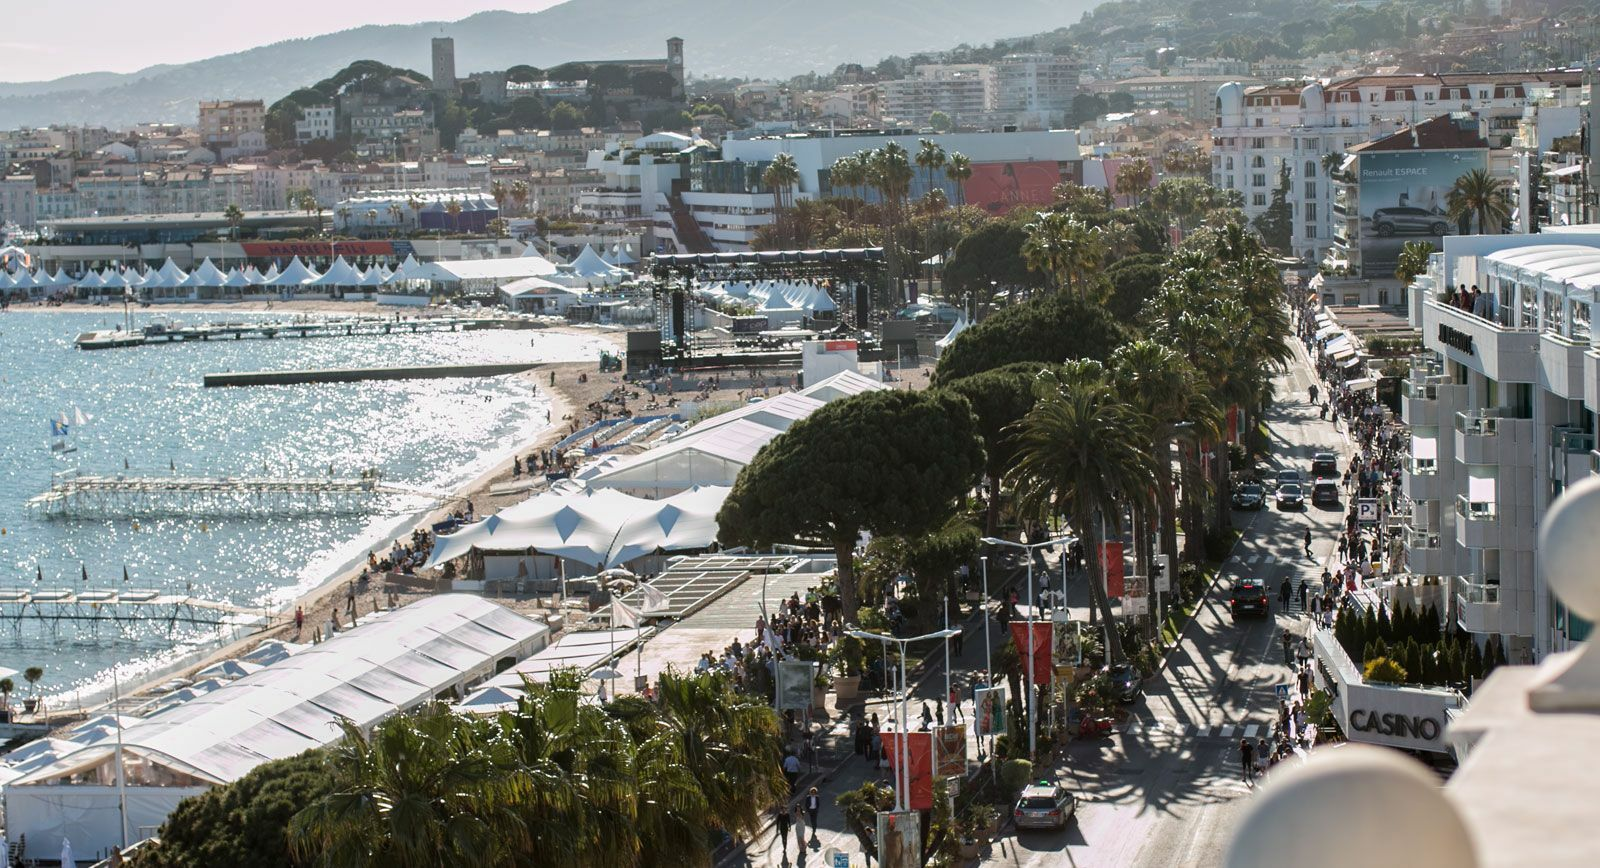 Cannes 2017: Weekend with AVAKIAN discovering how celebrities prepare for walking down the red carpet